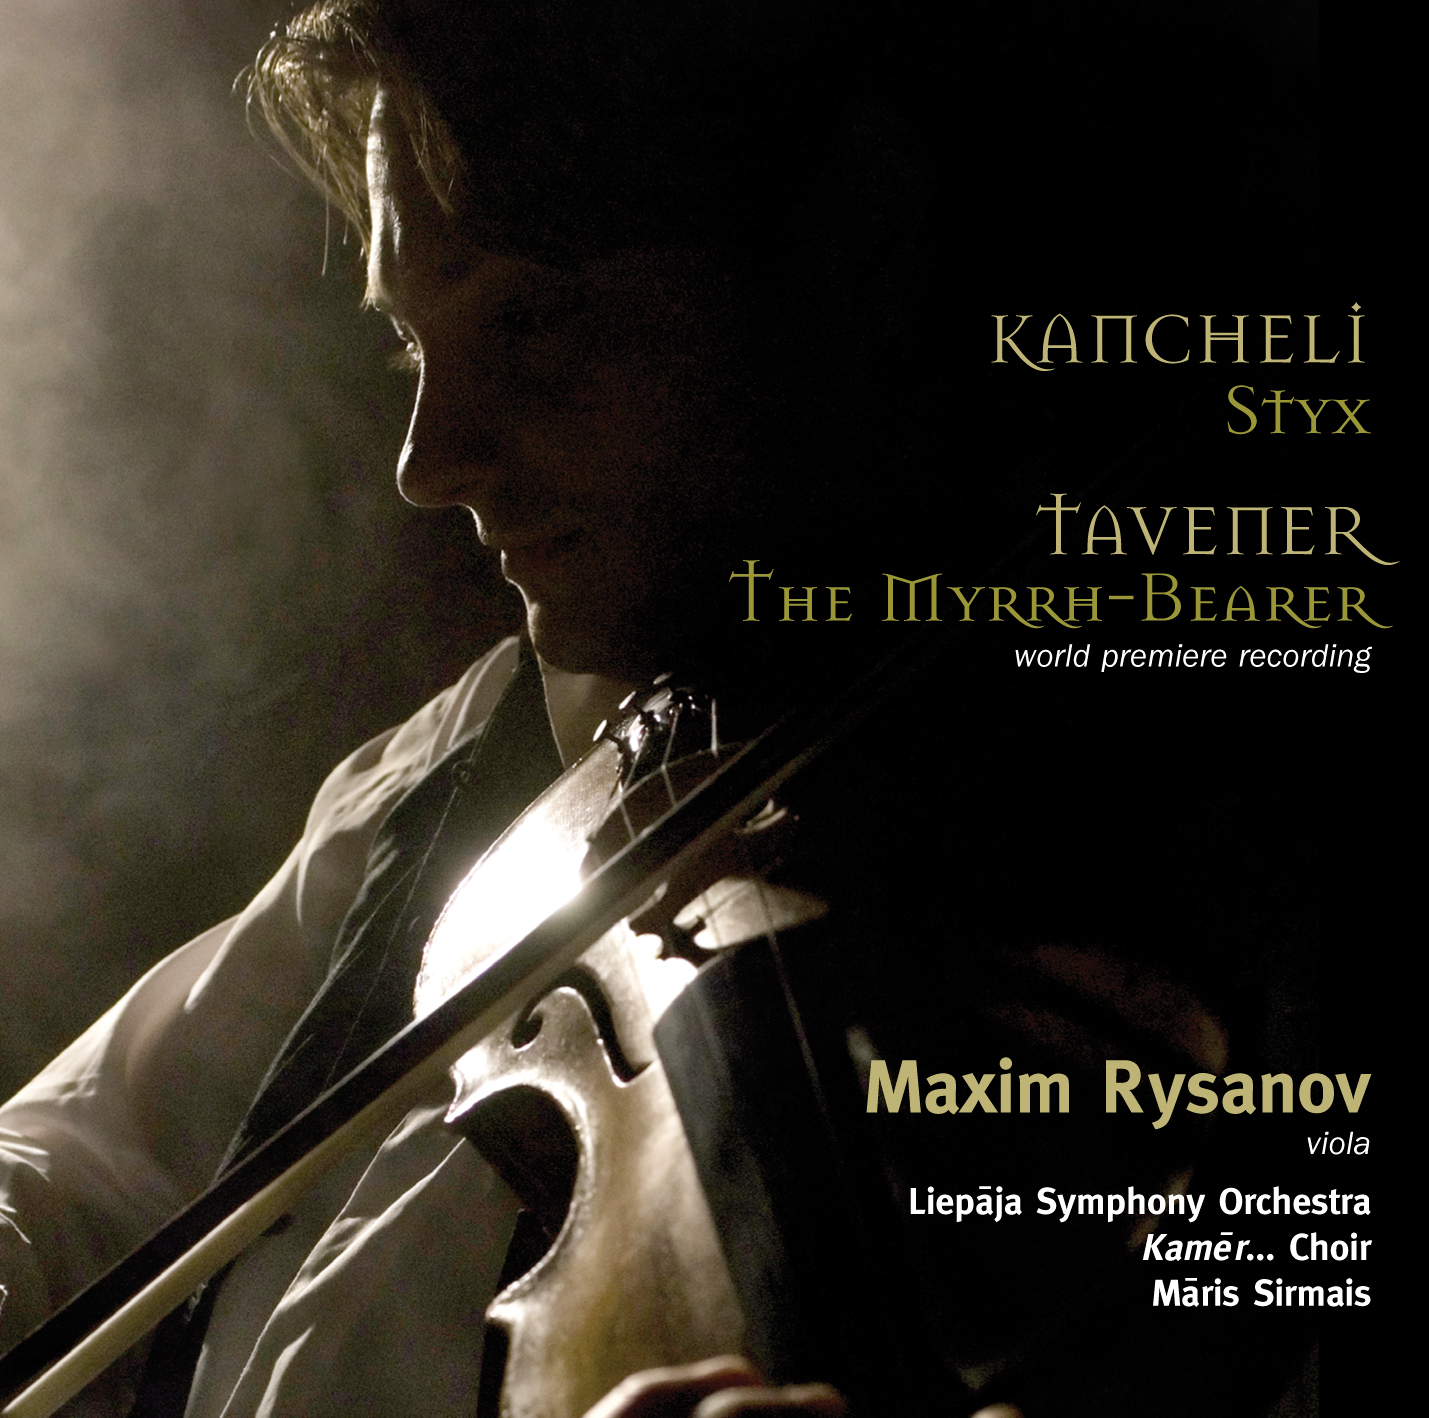 Kancheli: Styx / Tavener: The Myrrh-Bearer